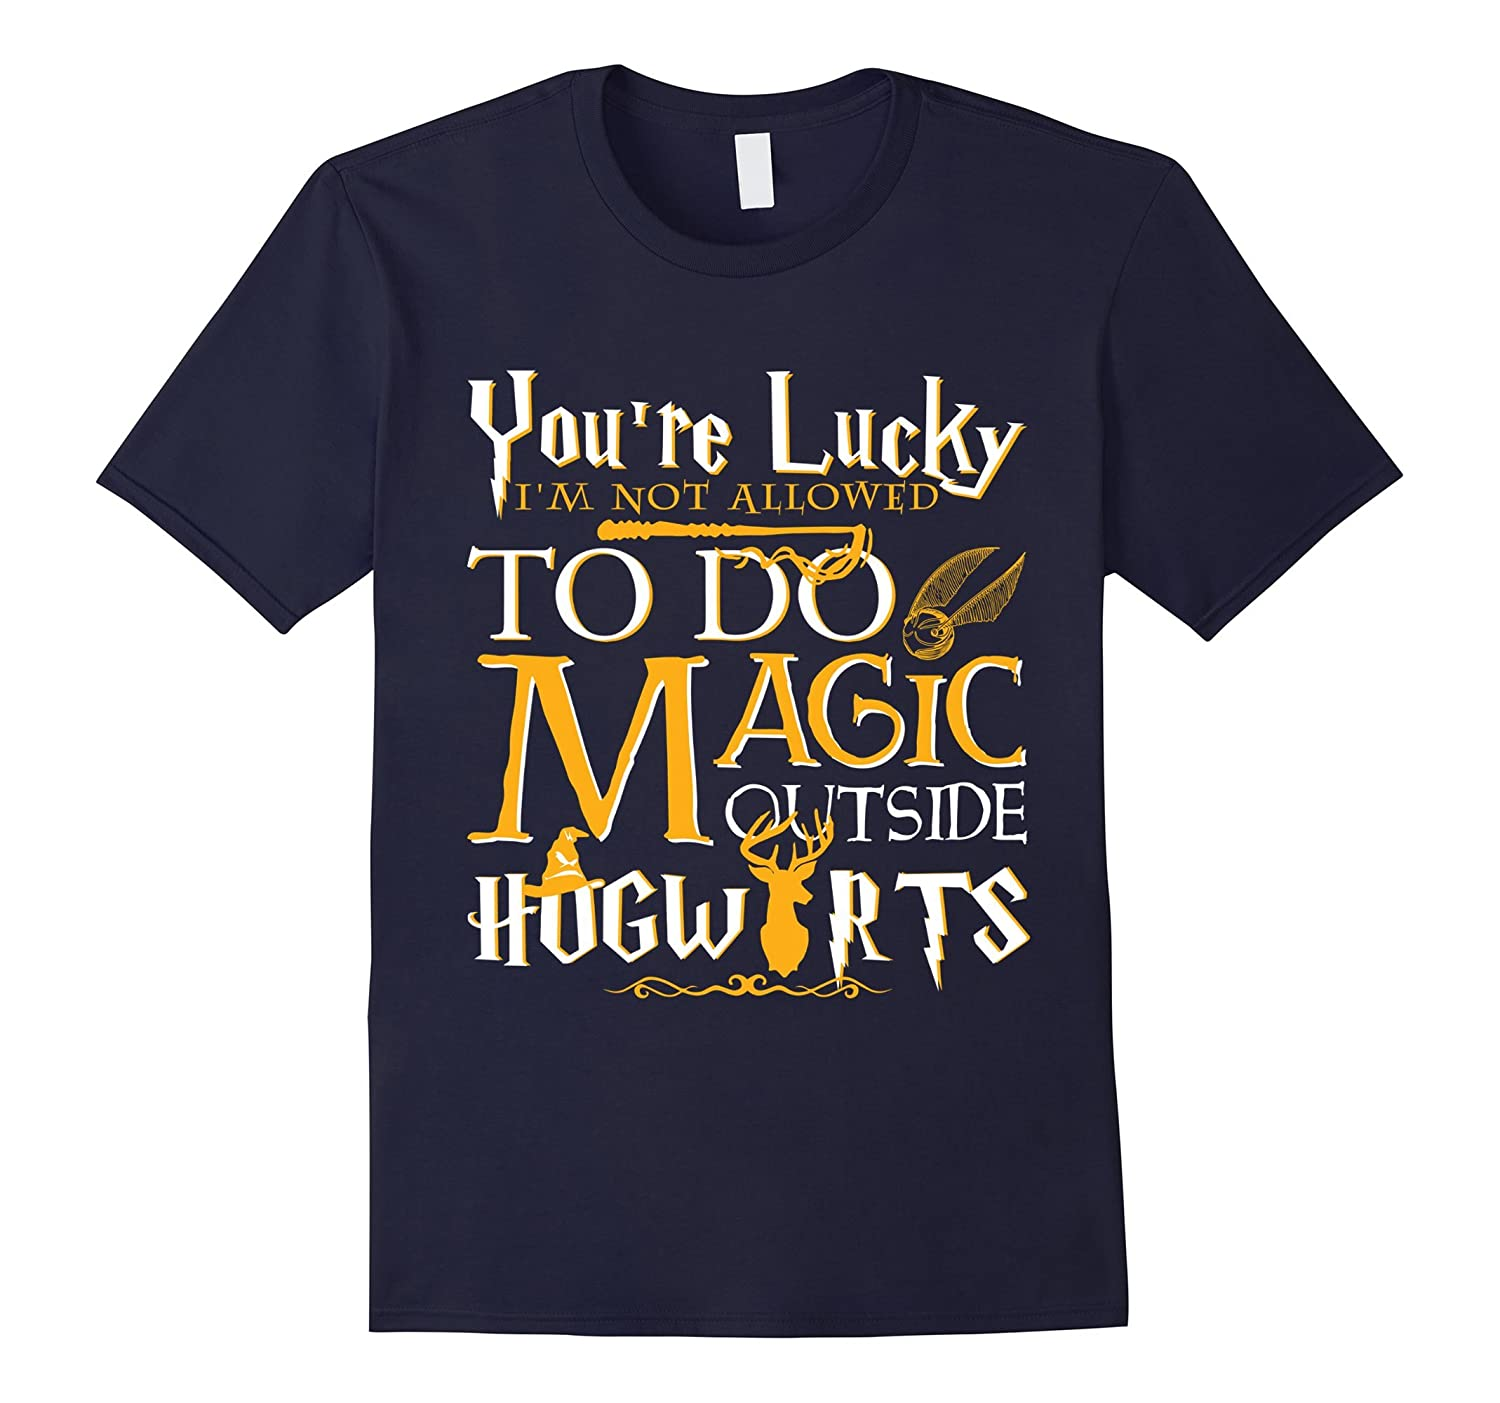 You're lucky I'm not allowed to do magic outside T-shirt-BN